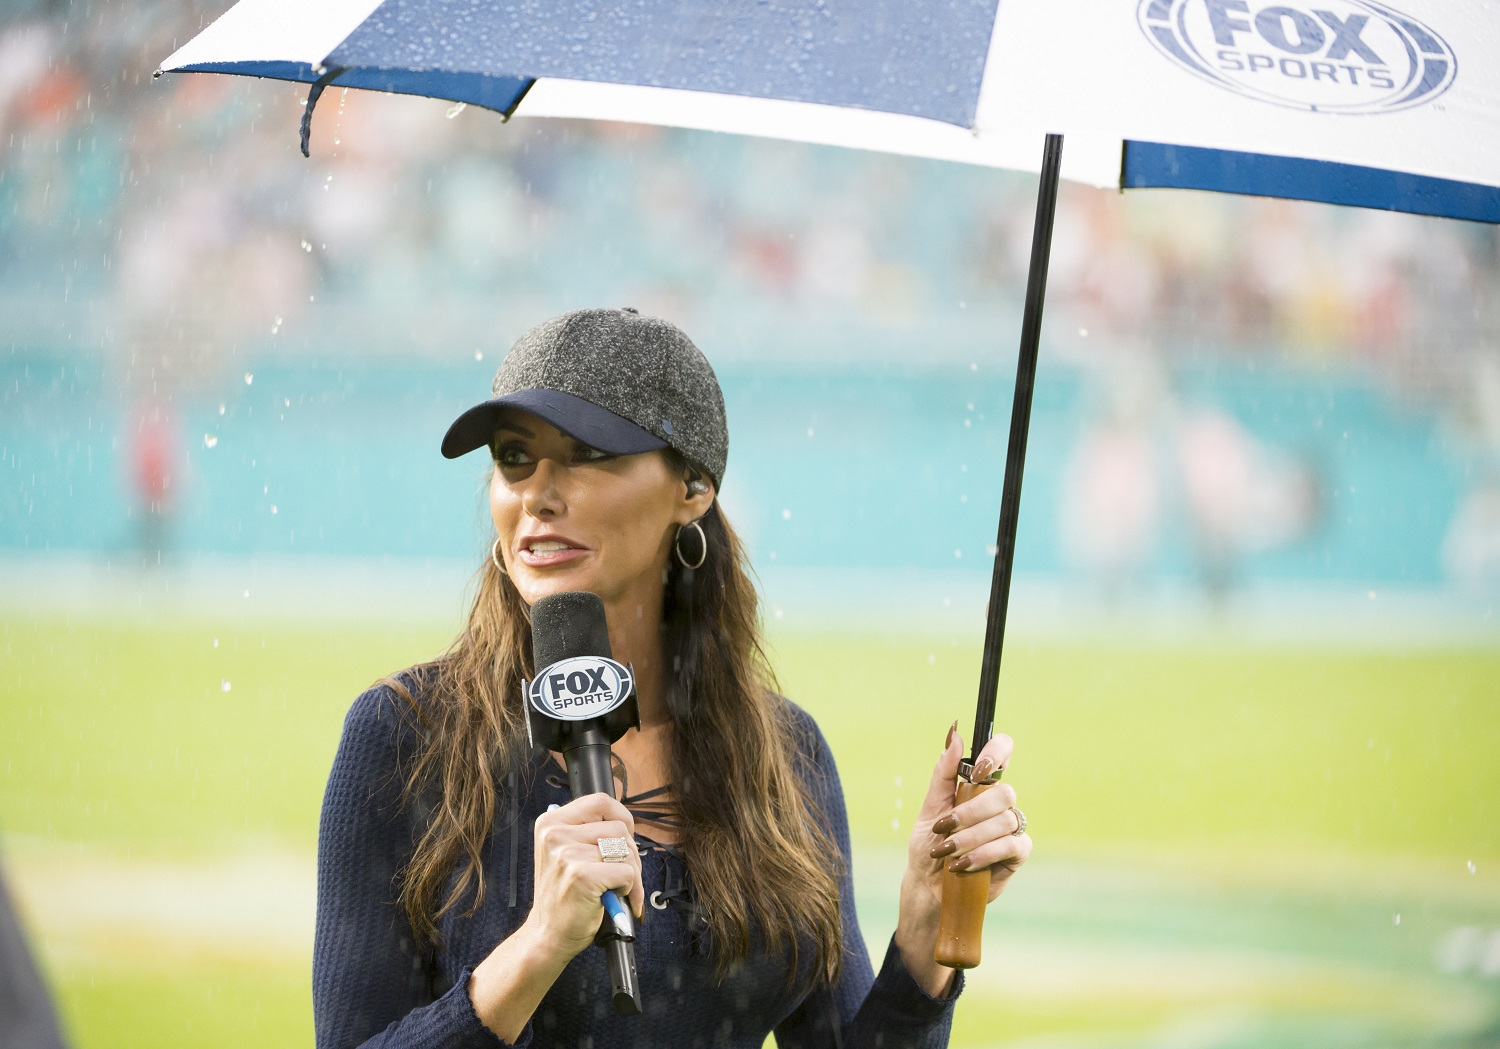 Holly Sonders worked at Fox Sports from 2014 to 2019.